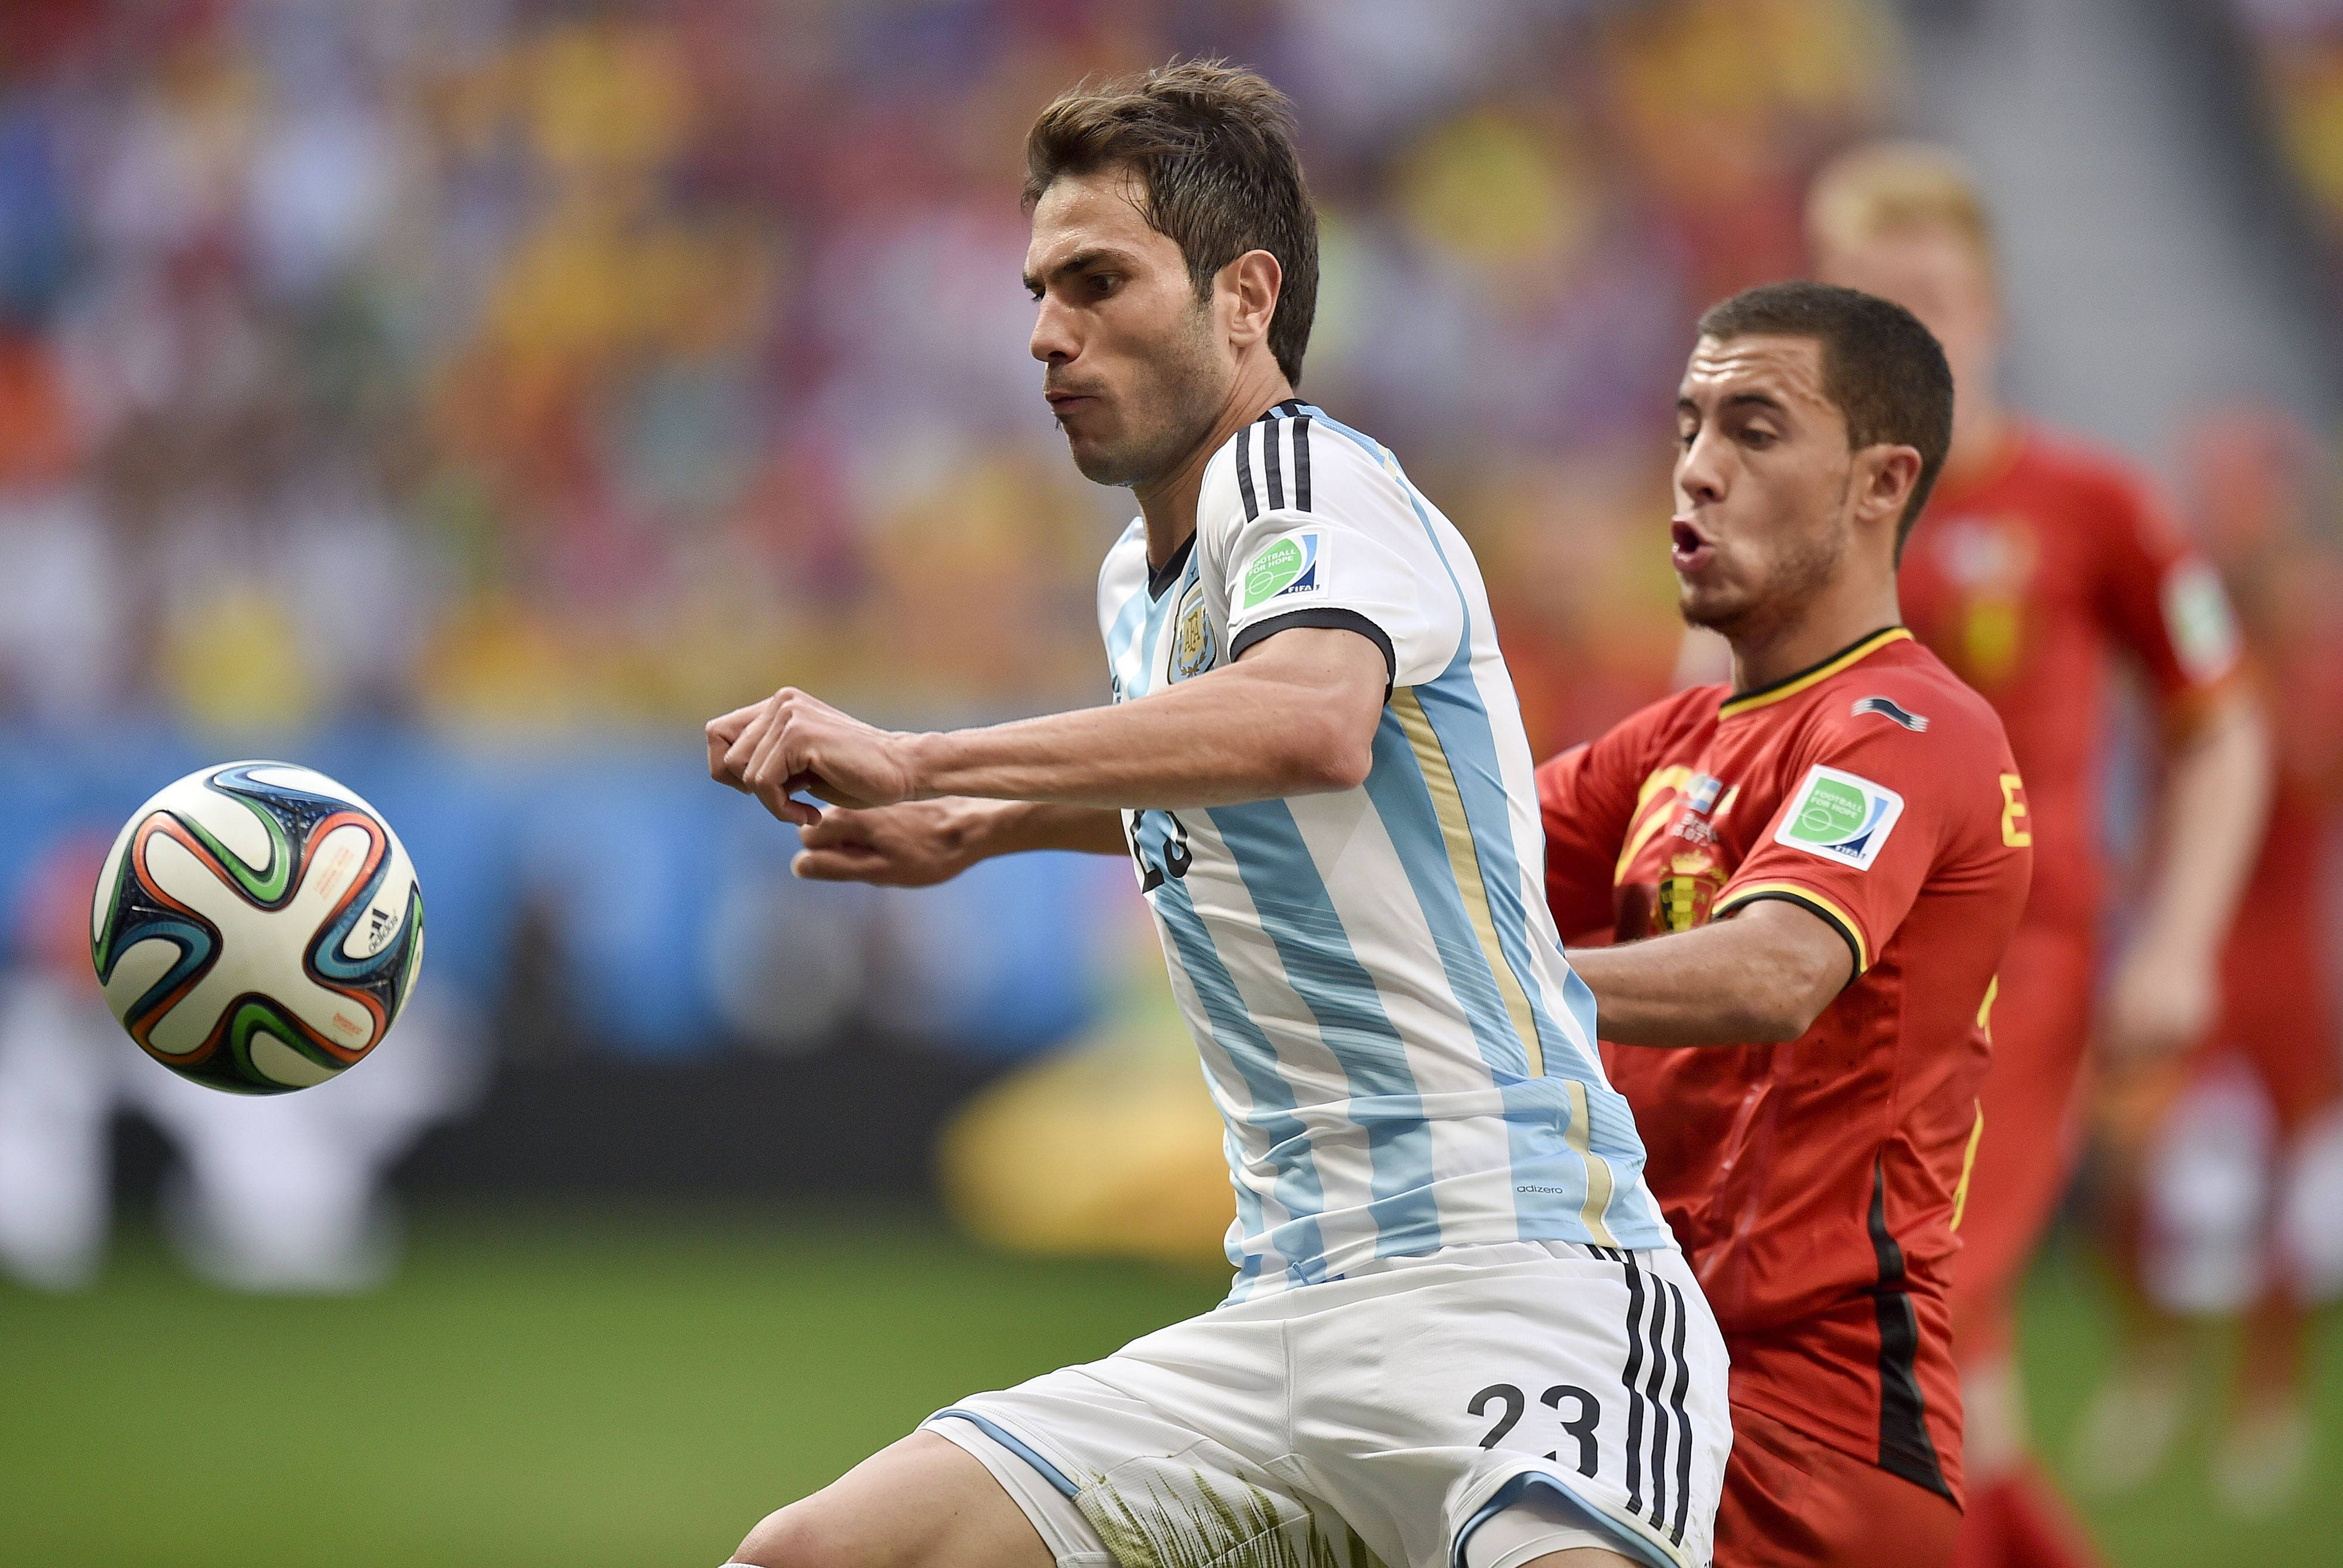 Argentina's Jose Maria Basanta, left, is challenged by Belgium's Eden Hazard during their World Cup quarterfinal soccer Saturday at the Estadio Nacional in Brasilia, Brazil.